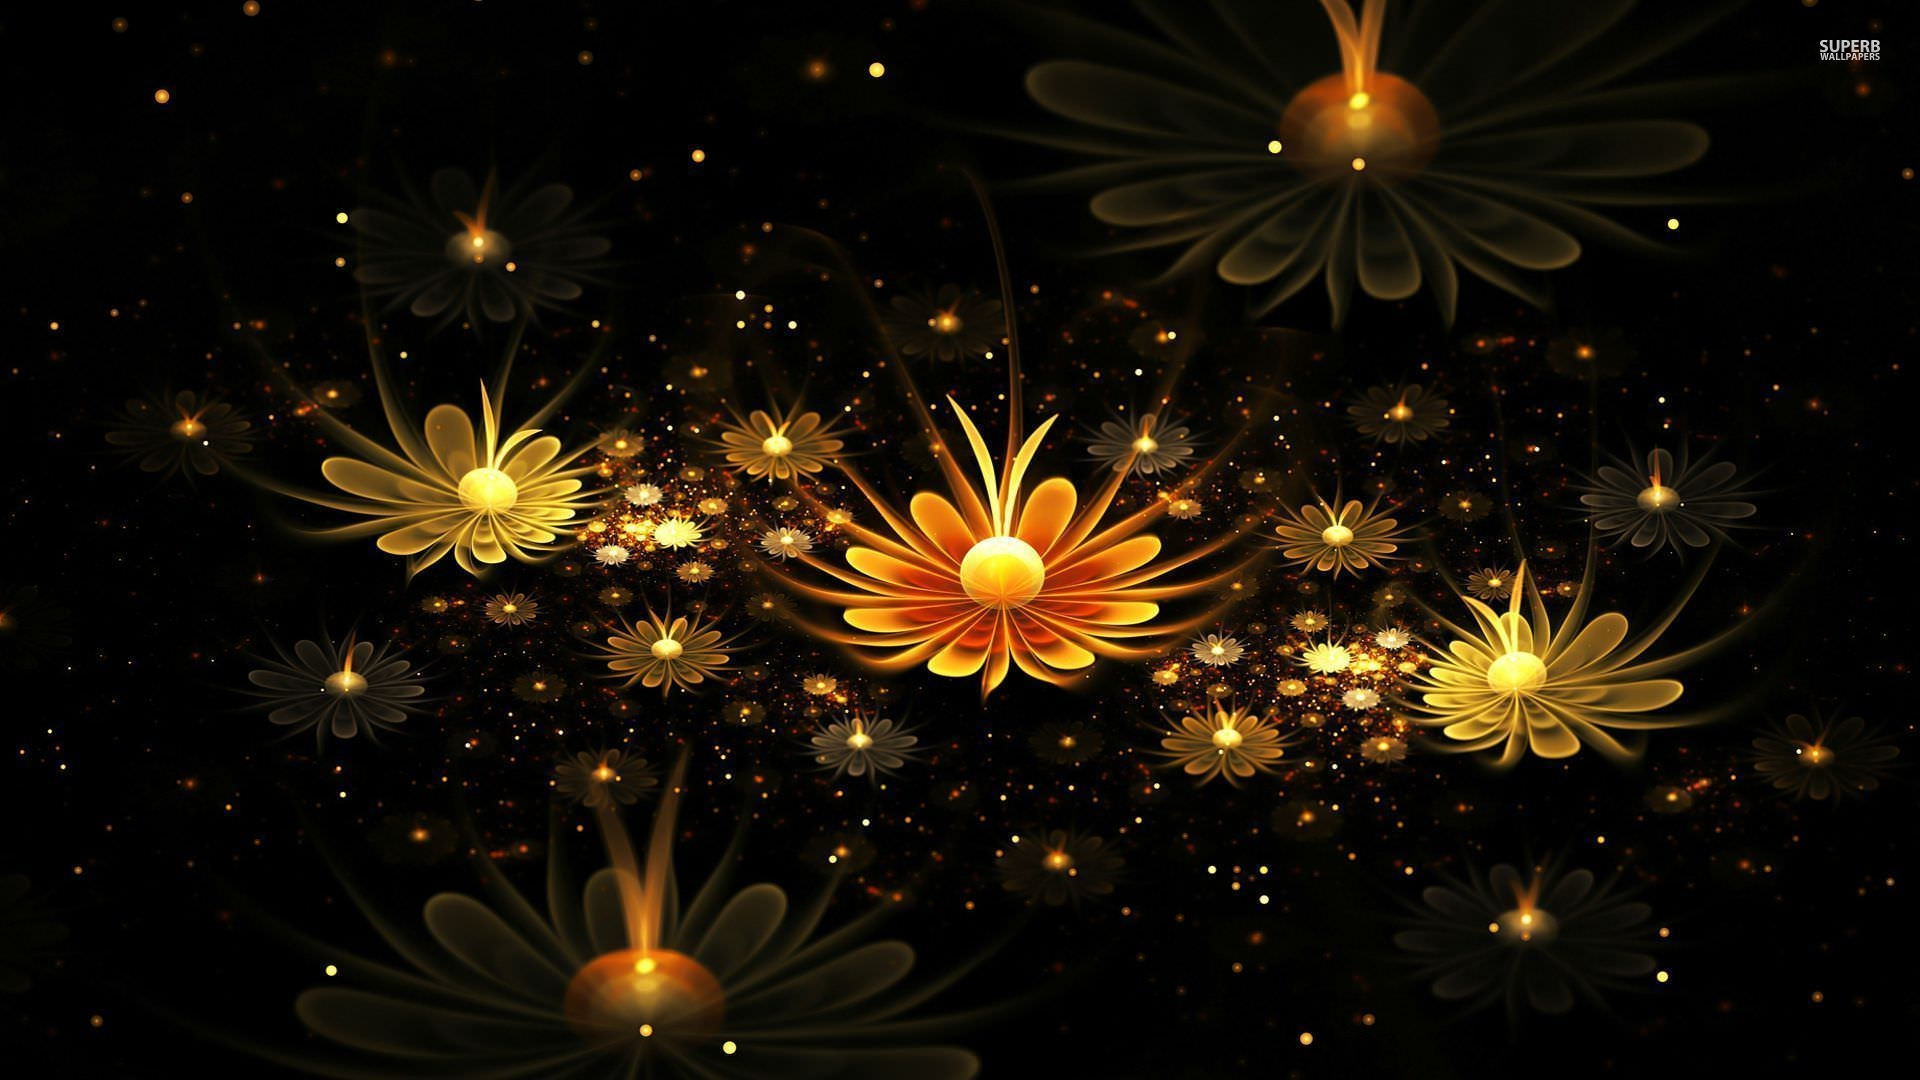 Fractal Glowing Daisies Wallpaper